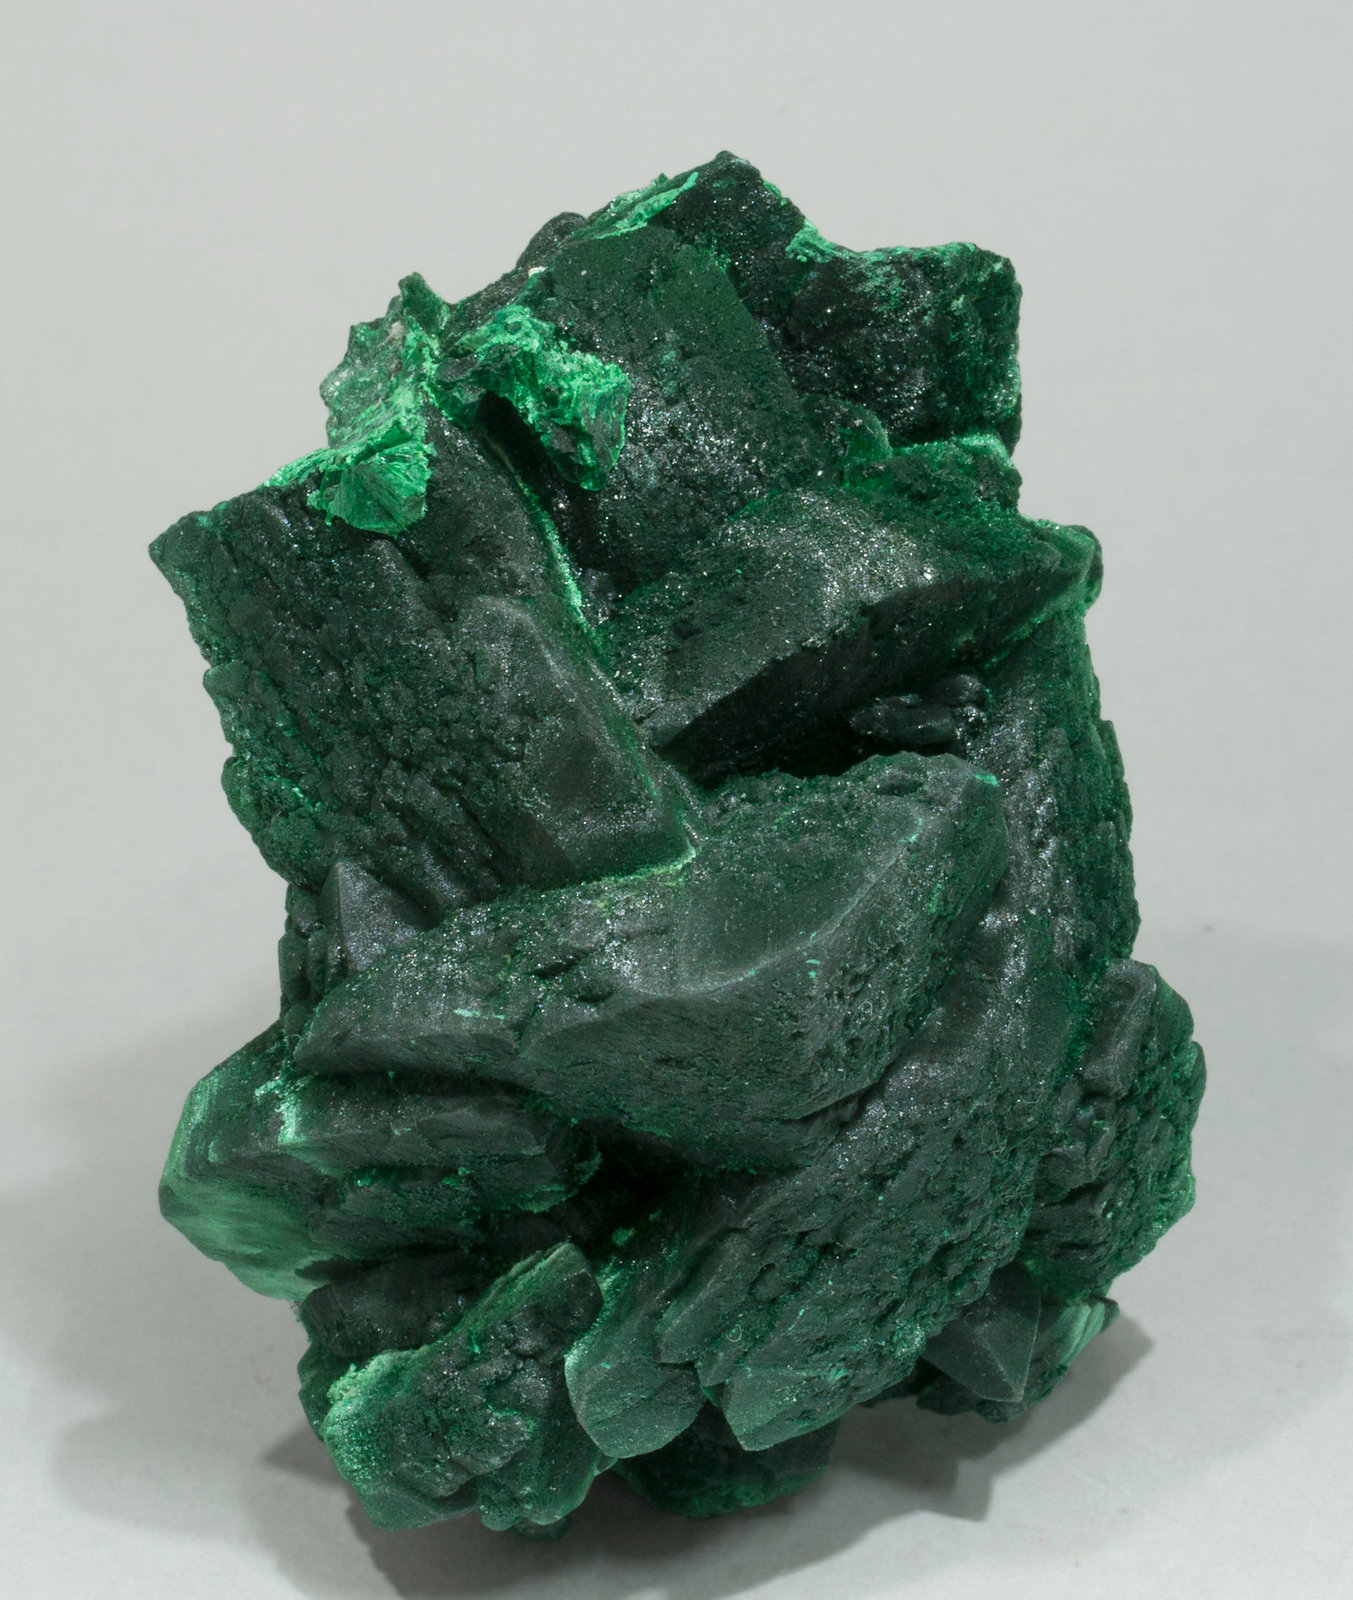 specimens/s_imagesZ0/Malachite-TF49Z0s.jpg